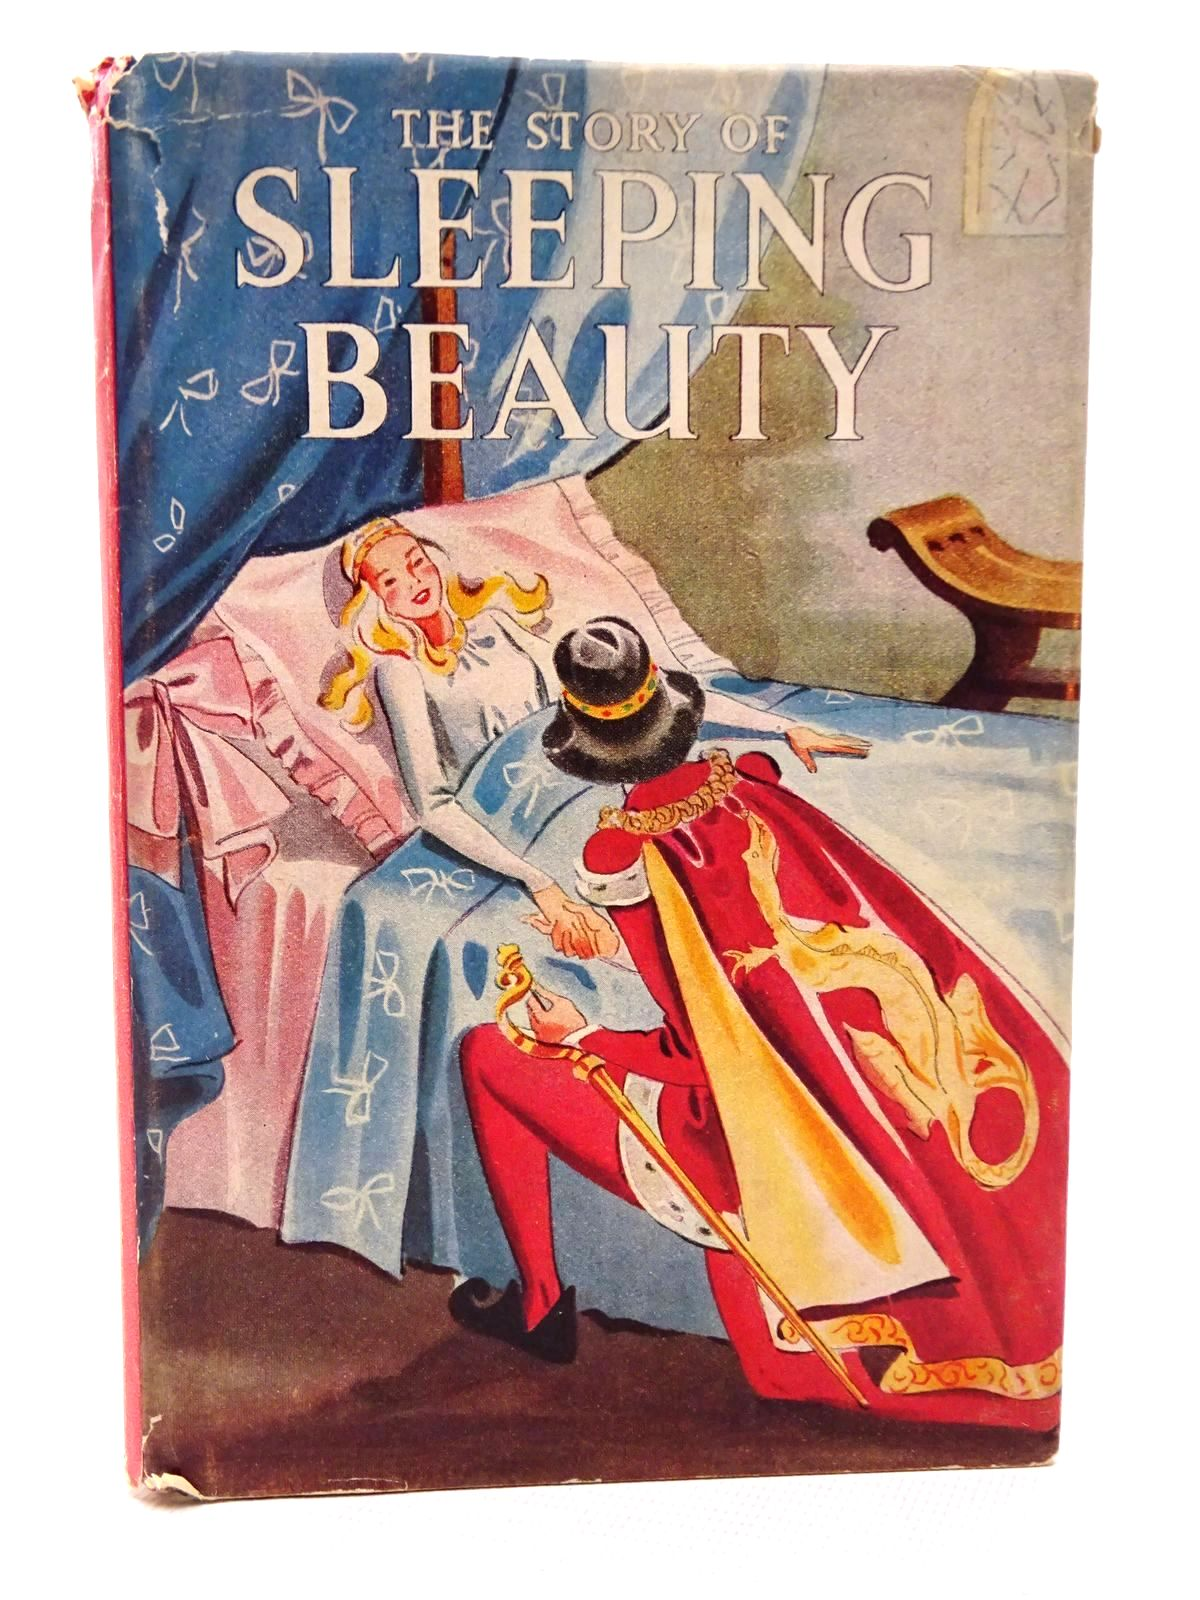 Photo of THE STORY OF SLEEPING BEAUTY written by Levy, Muriel illustrated by Bowmar, Evelyn published by Wills & Hepworth Ltd. (STOCK CODE: 2124618)  for sale by Stella & Rose's Books